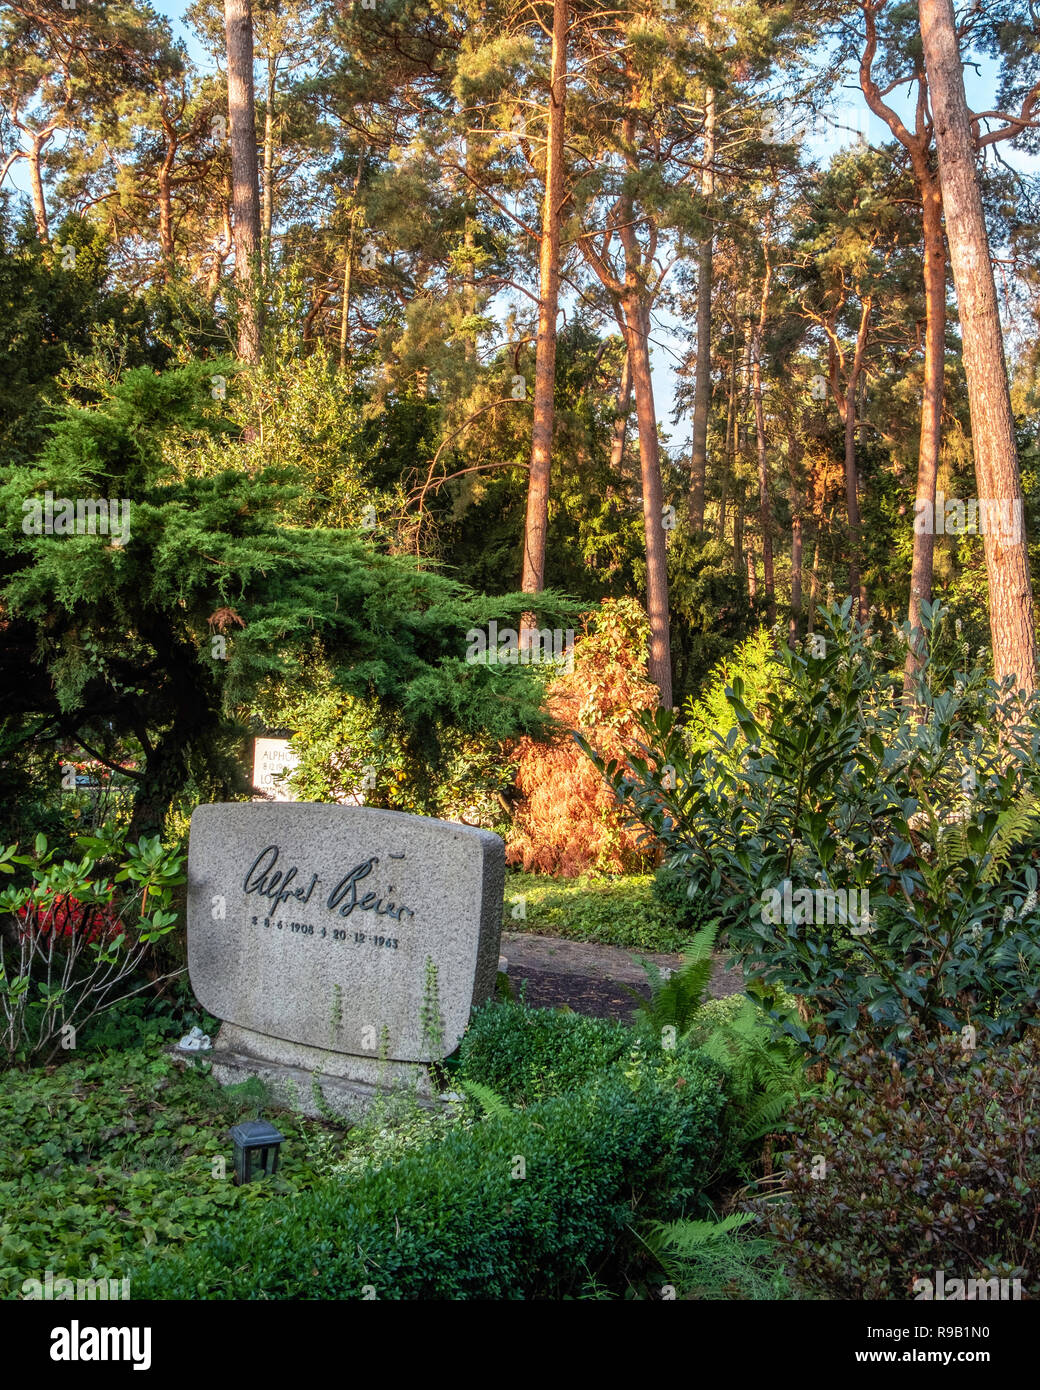 Berlin Waldfriedhof Dahlem (forest cemetery) is a graveyard on the edge of the Grunewald forest at Hüttenweg 47. Designed 1931-33 - Stock Image